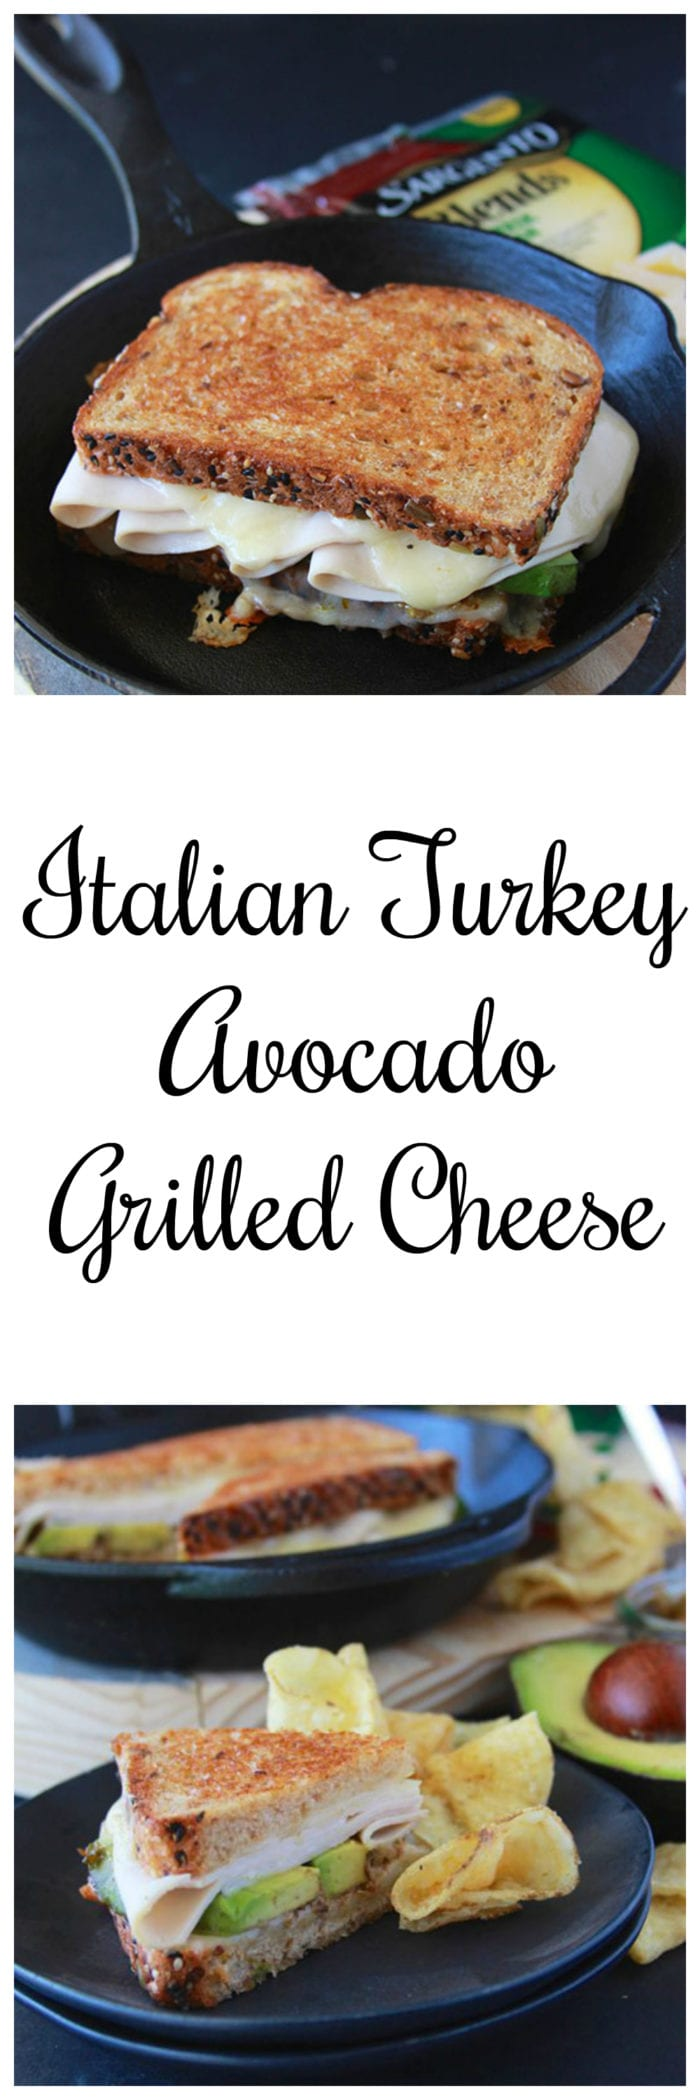 Italian Turkey Avocado Grilled Cheese is a new spin on the classic grilled cheese! www.cookingwithruthie.com #ad @sargentocheese #JuneDairyMonth #JuneDairyMonthBlog